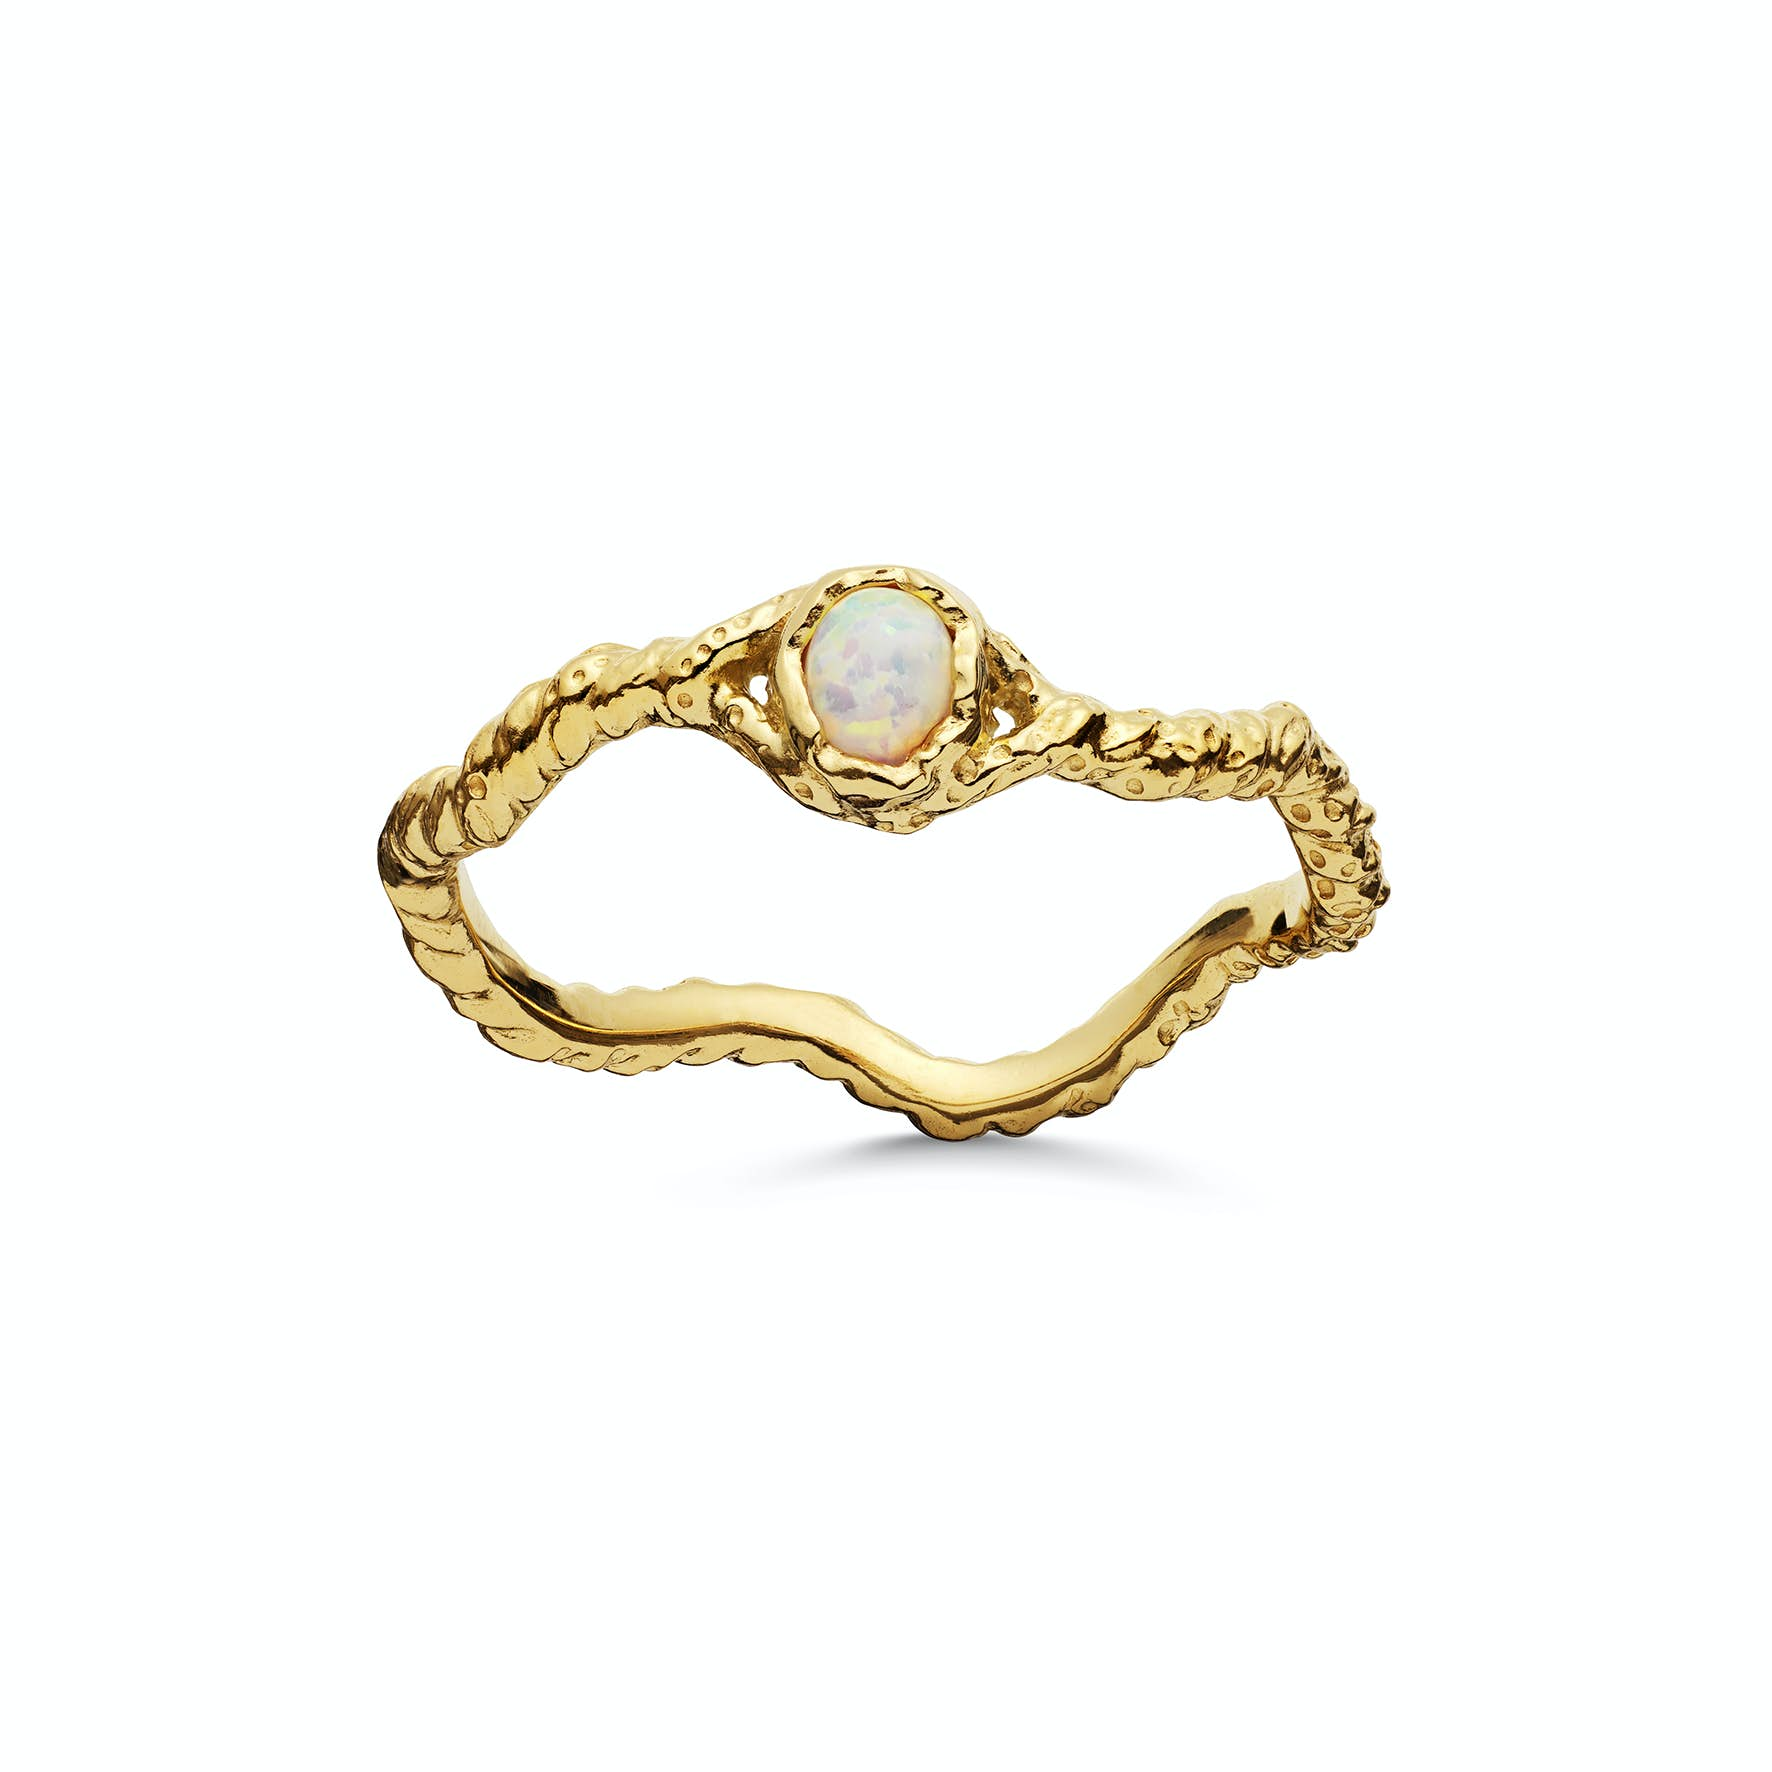 Lisa Ring from Maanesten in Goldplated-Silver Sterling 925